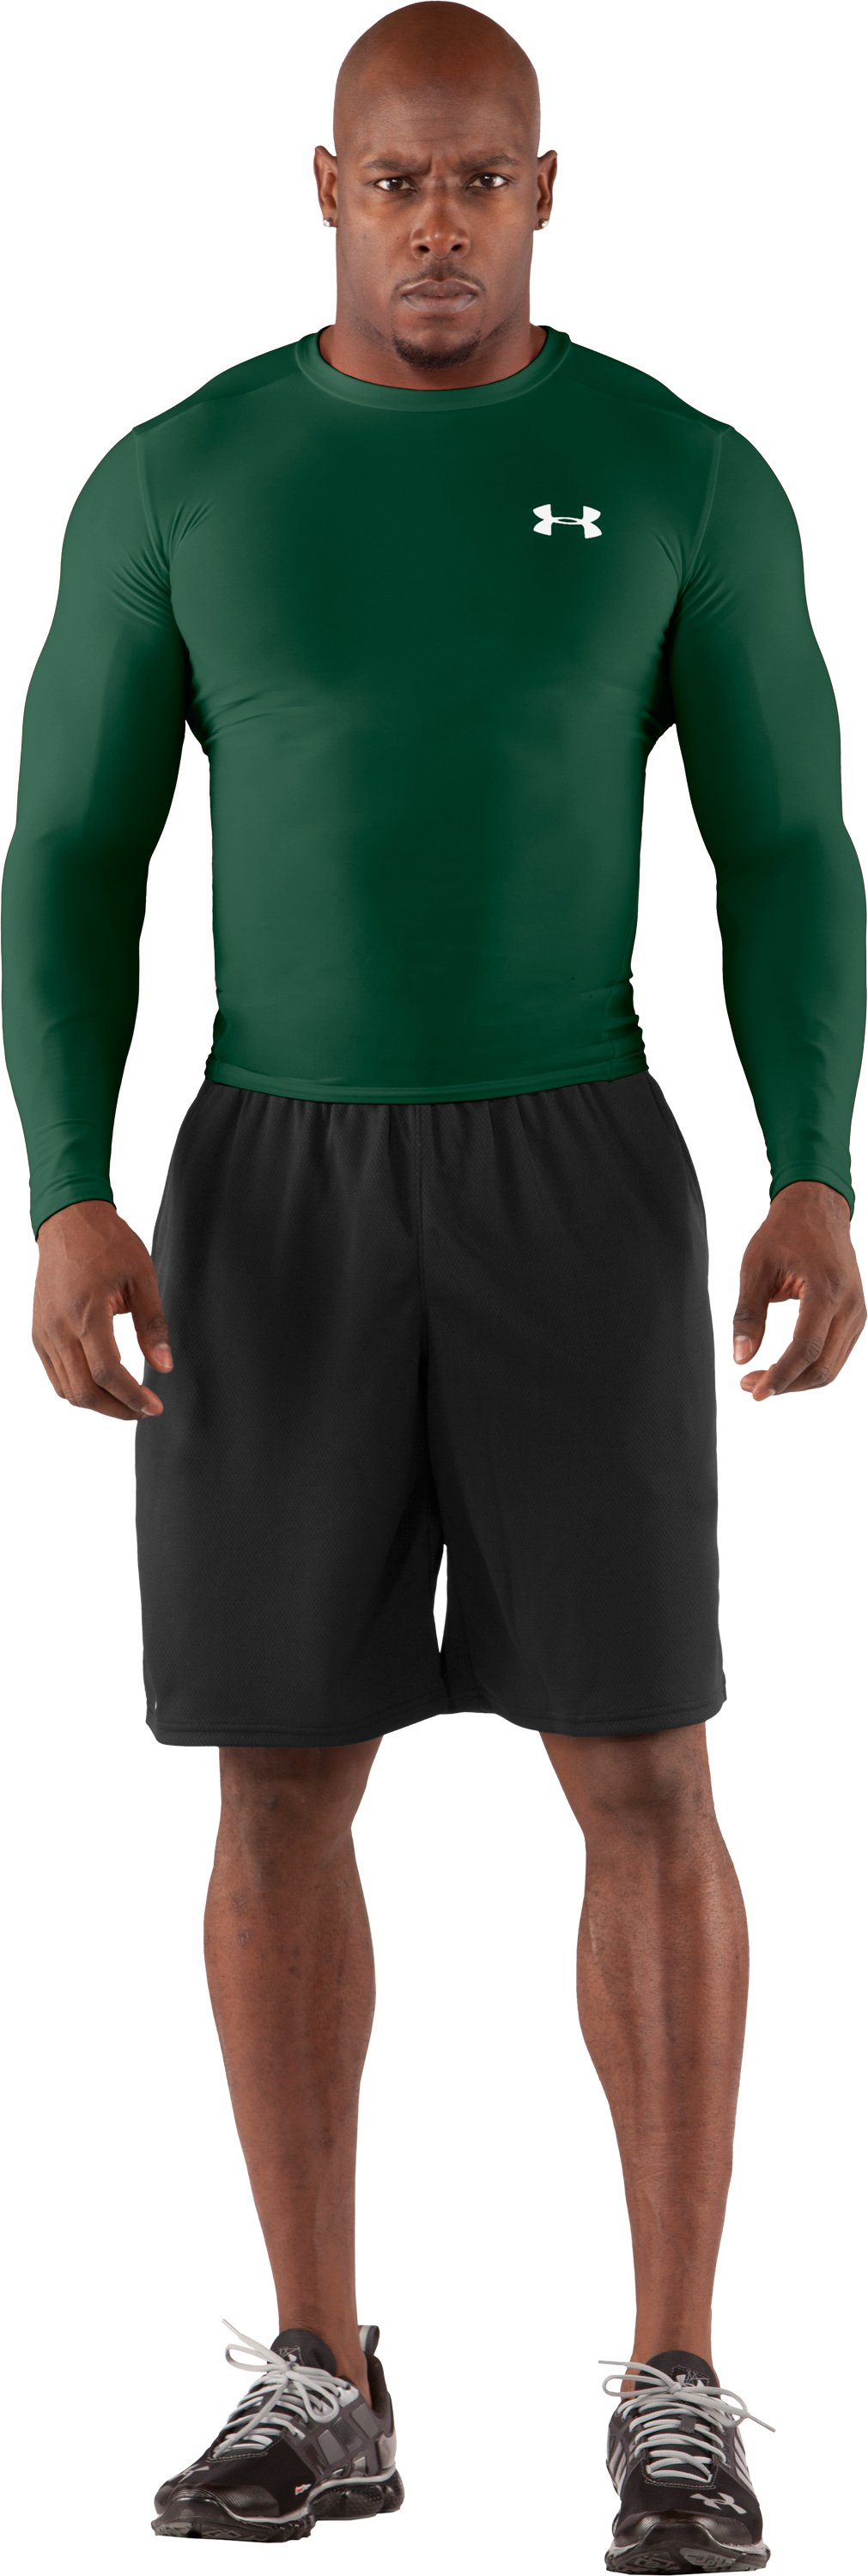 Men's HeatGear® Compression Long Sleeve T-Shirt, Forest Green